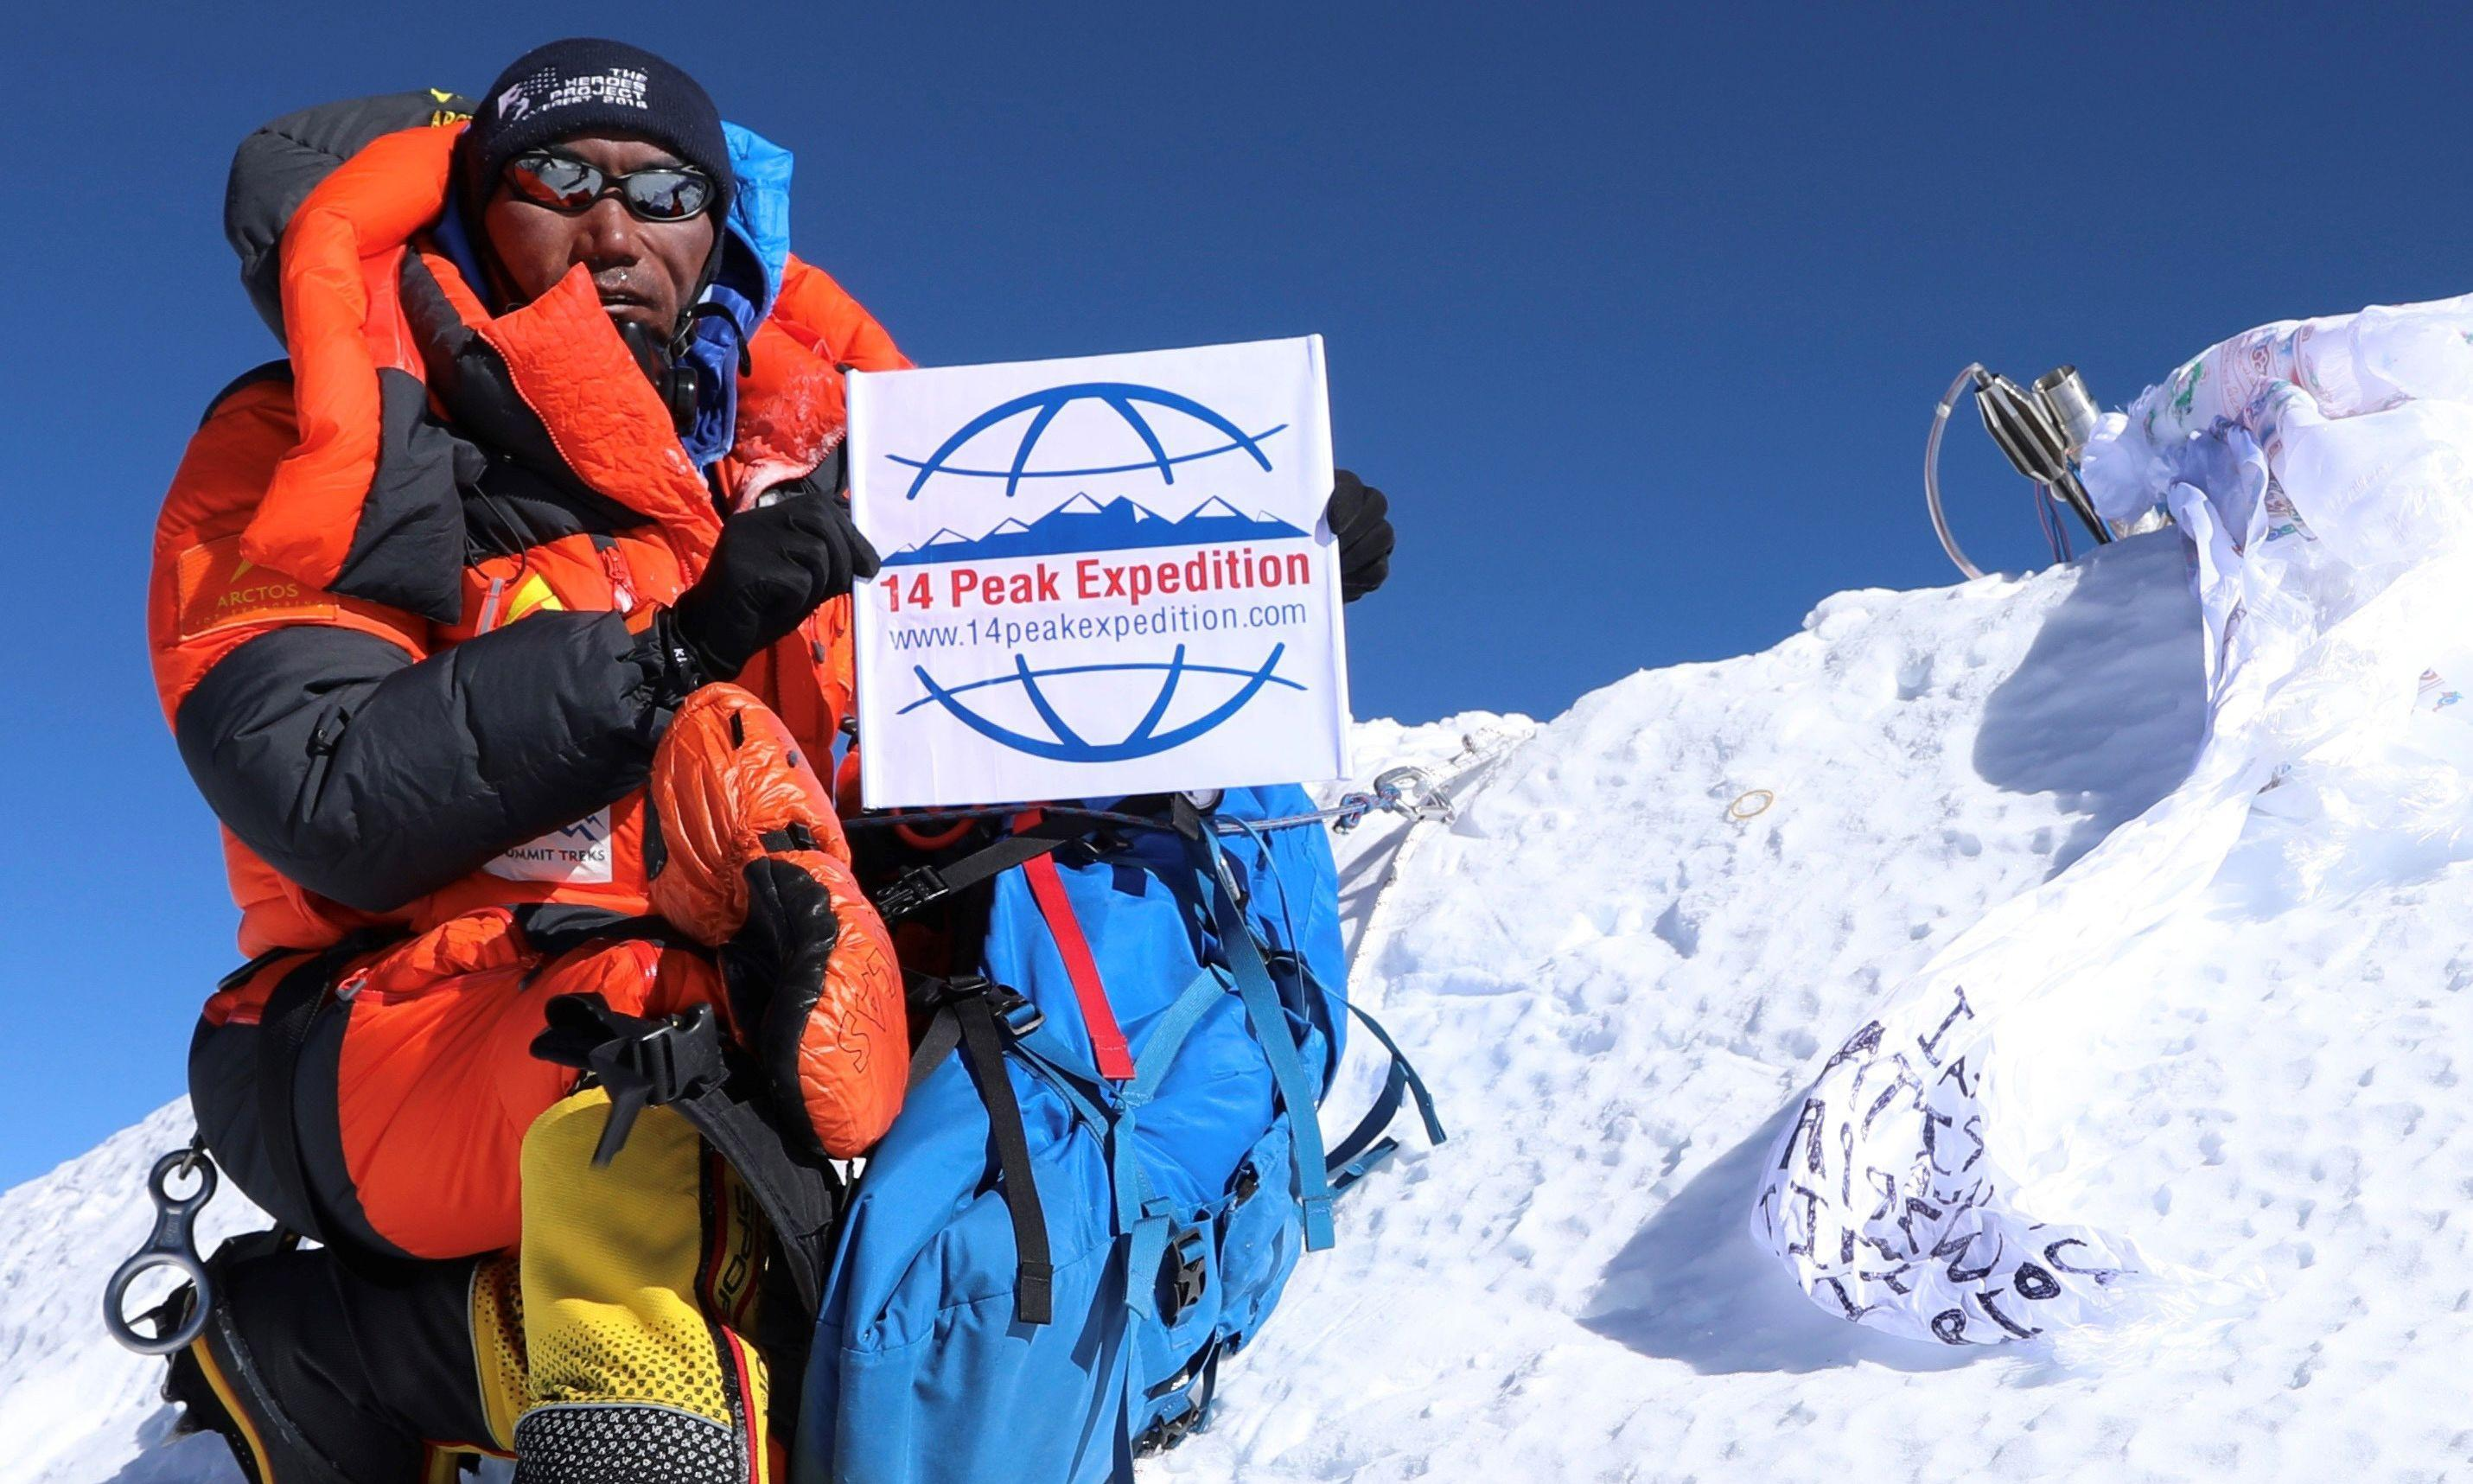 Nepalese climber scales Everest record 24 times – with one more to go